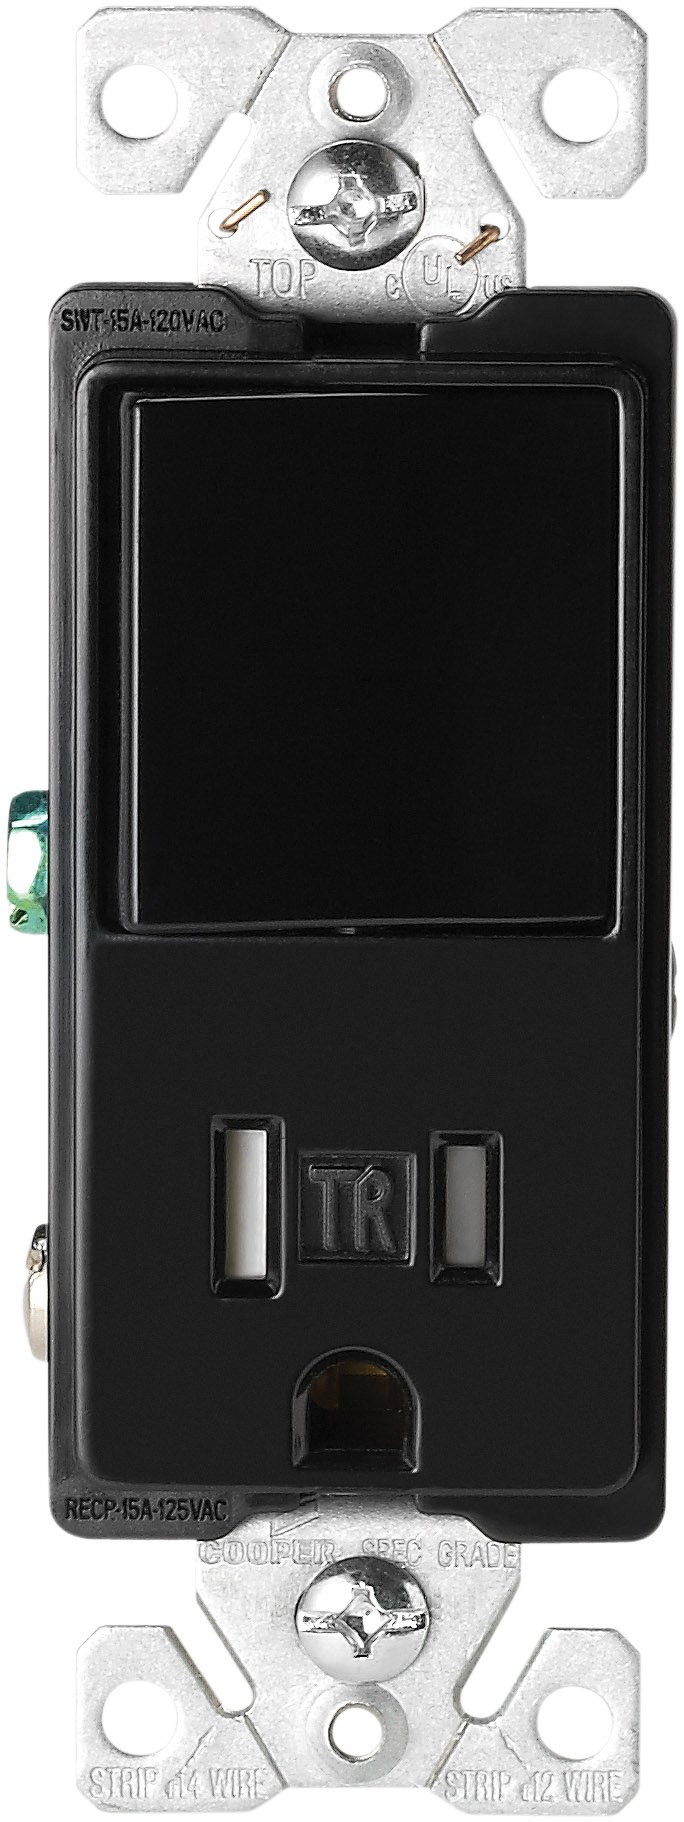 EATON Wiring TR7730BK 15-Amp 3-Wire Tr Receptacle 120V Decorator Combination Single-Pole Switch with 2-Pole, Blackblack